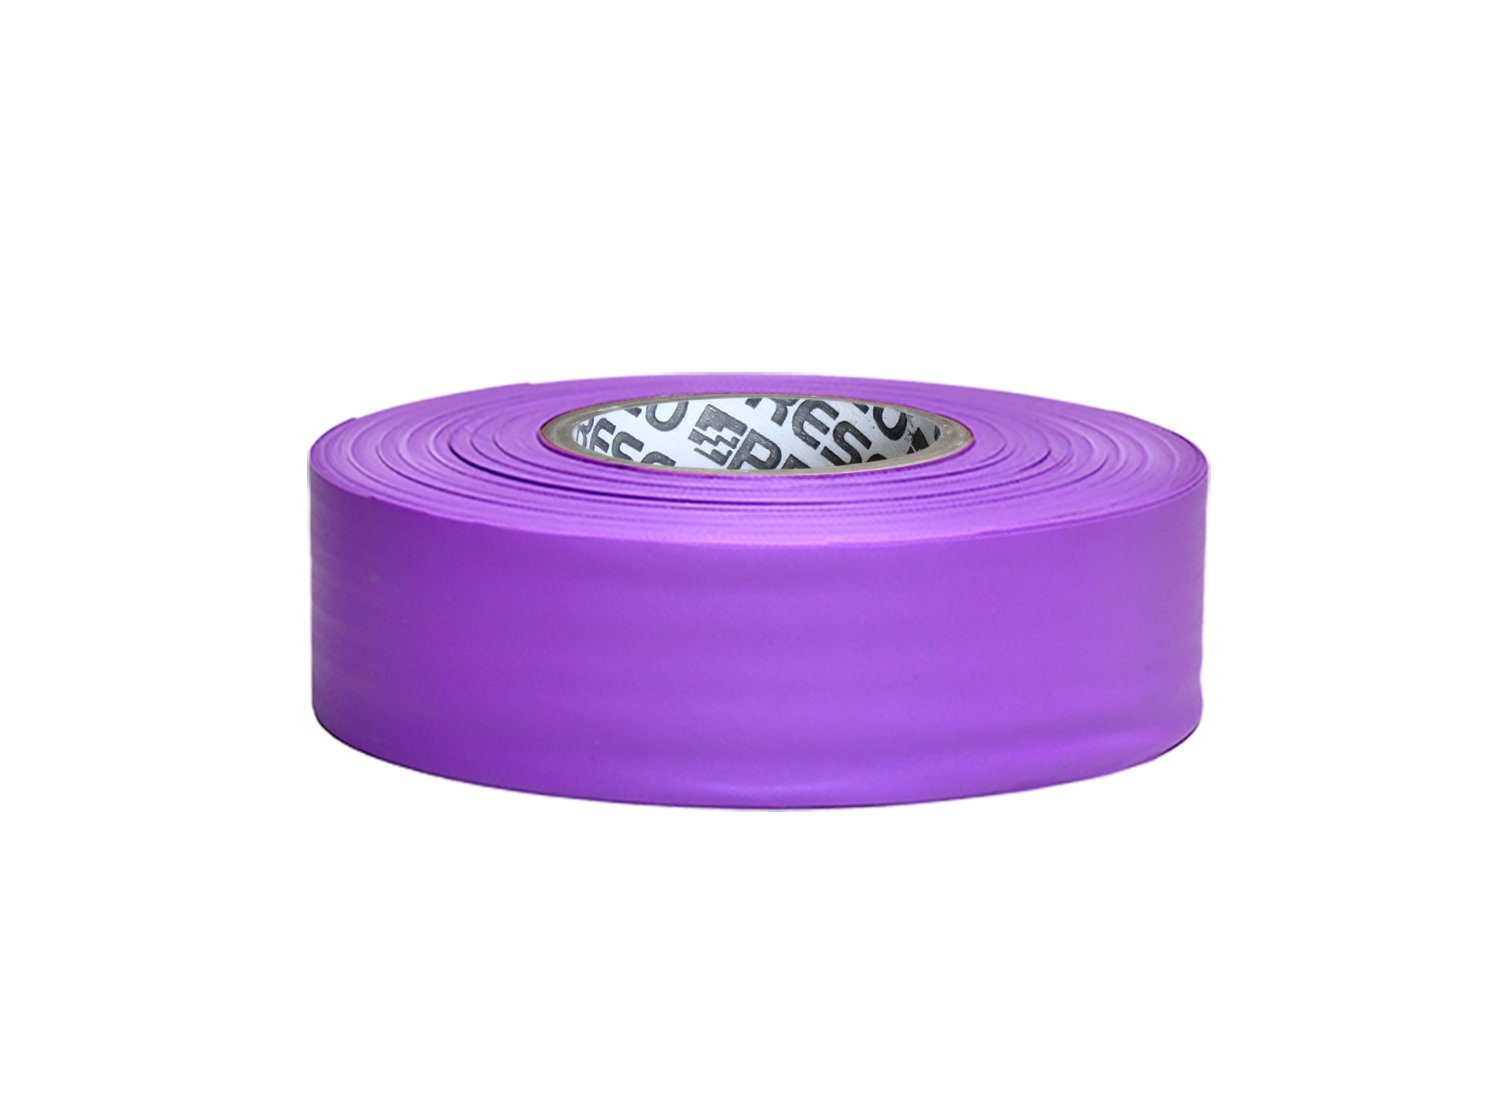 Presco TFPP 1-3/16'' x 300' Purple PVC Taffeta Flagging Tape, 3.75'' Height, 1.18'' Wide, 3.75'' Length by Presco